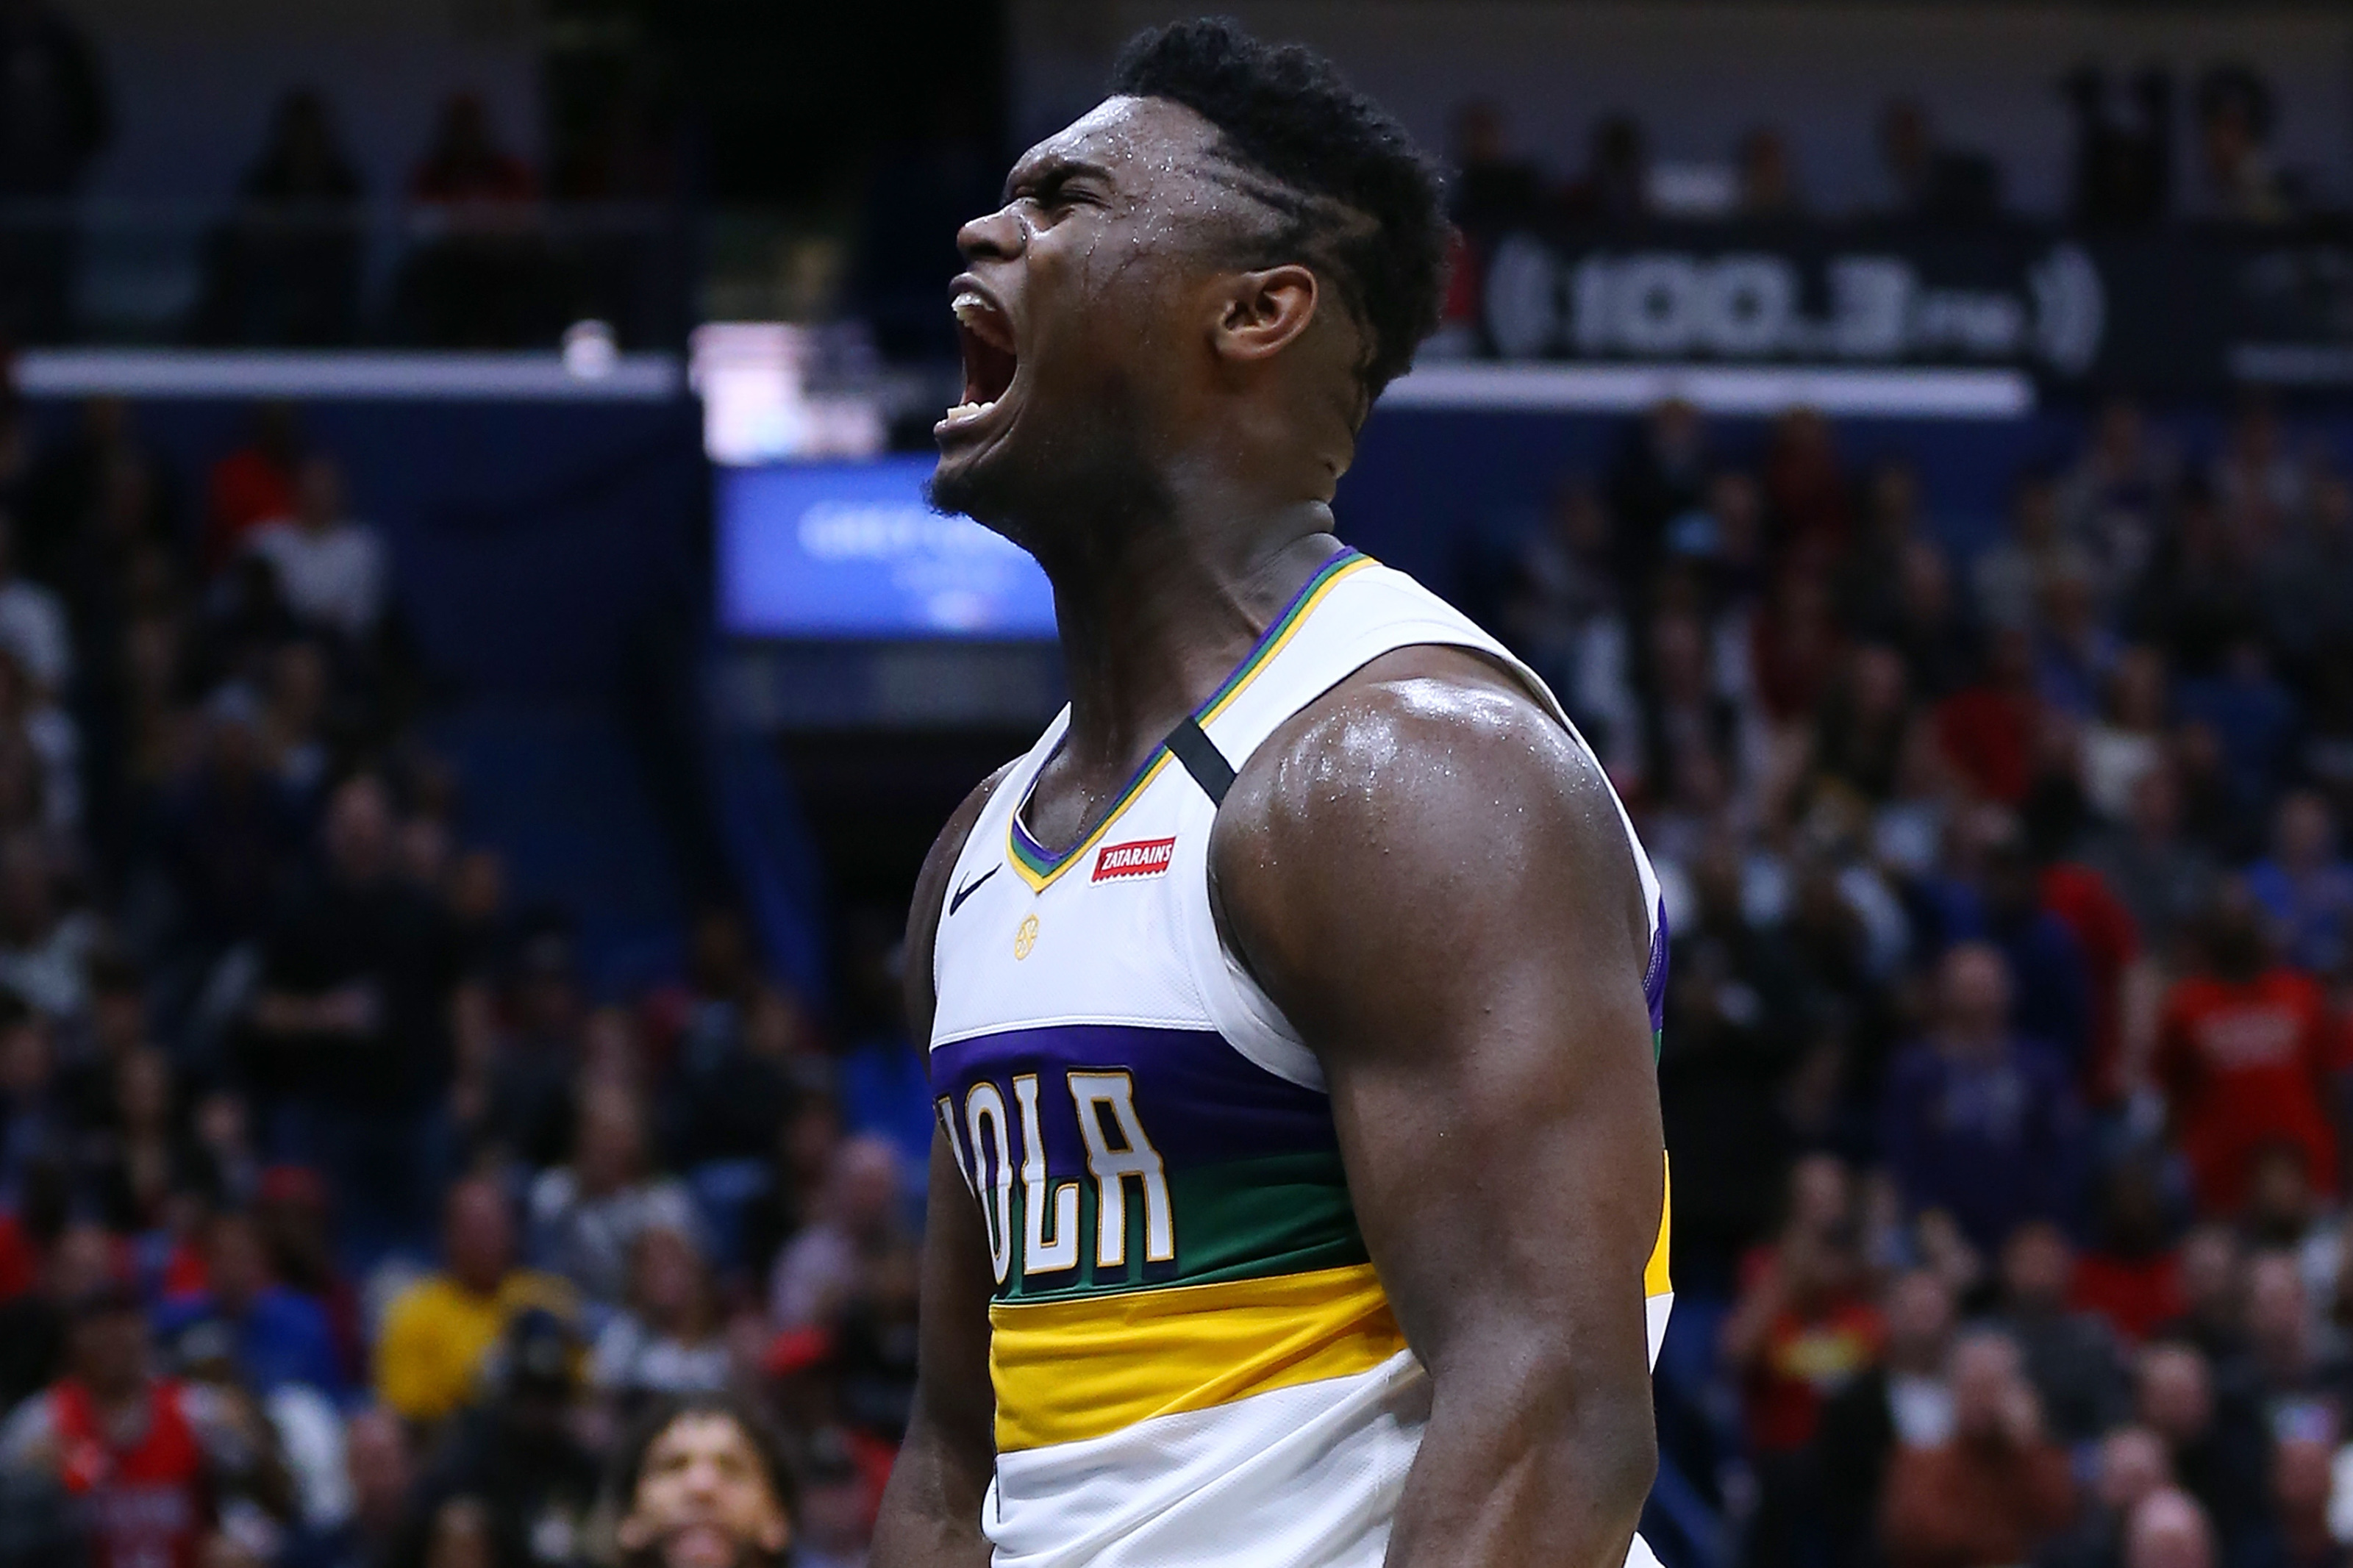 Zion Williamson is clearly becoming the next great NBA star